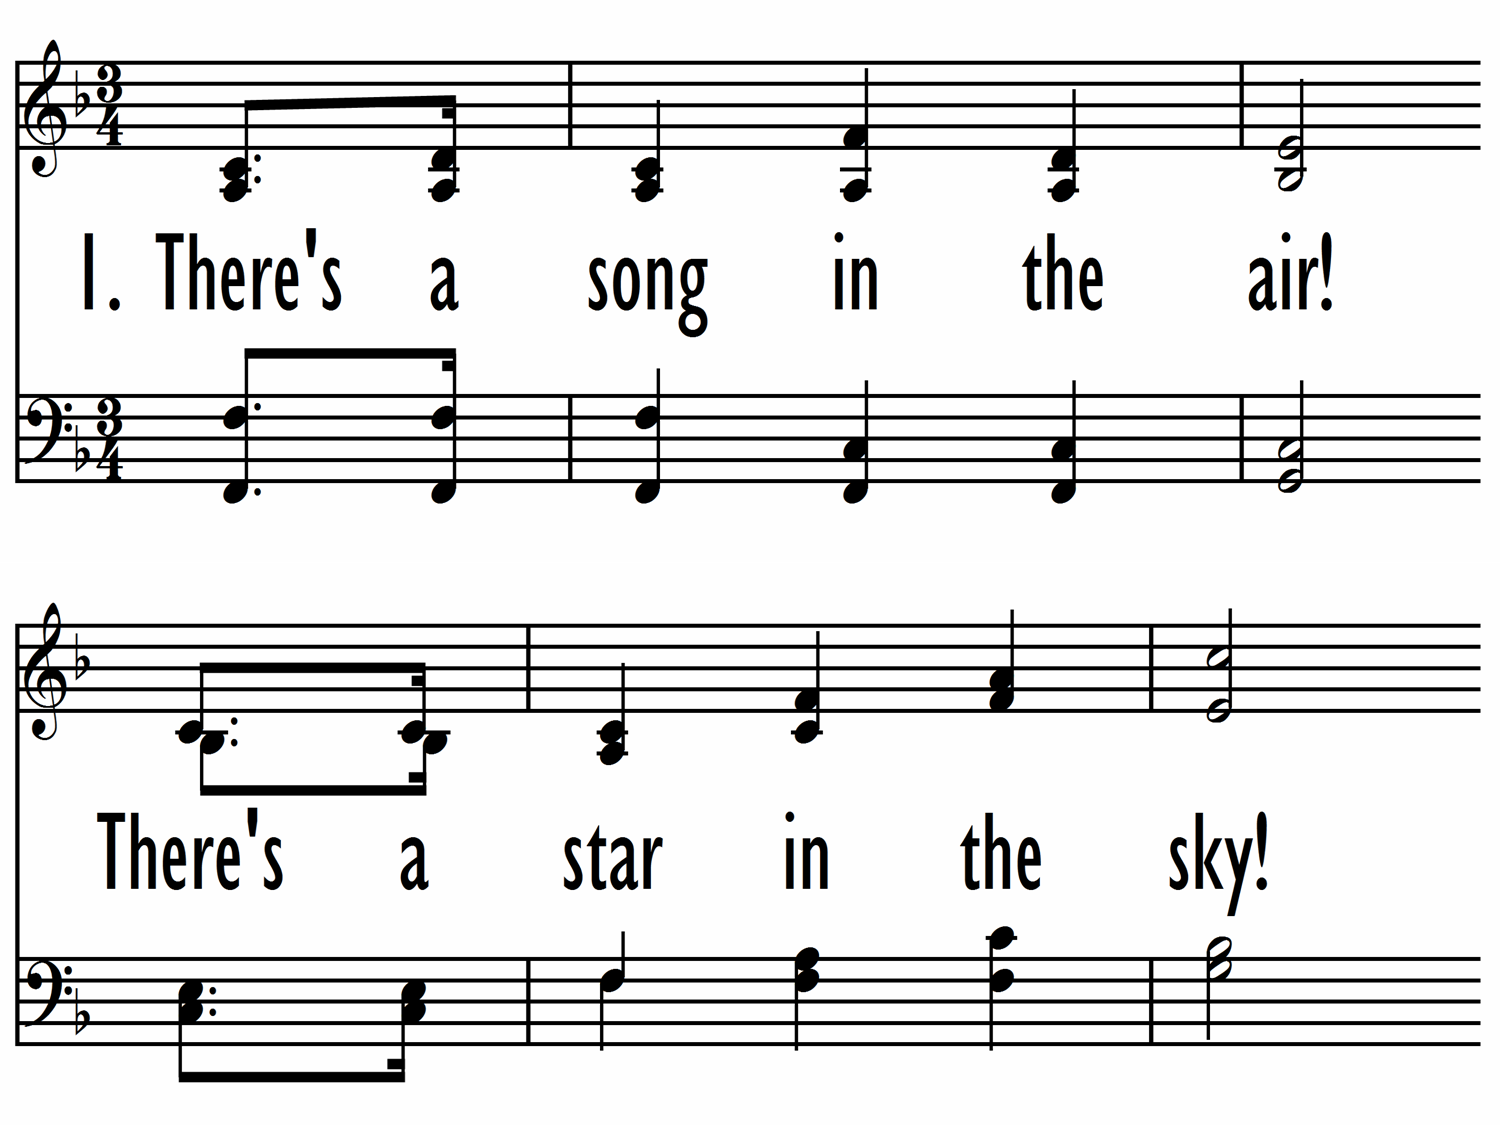 THERE'S A SONG IN THE AIR (Baptist Hymnal 2008/Worship